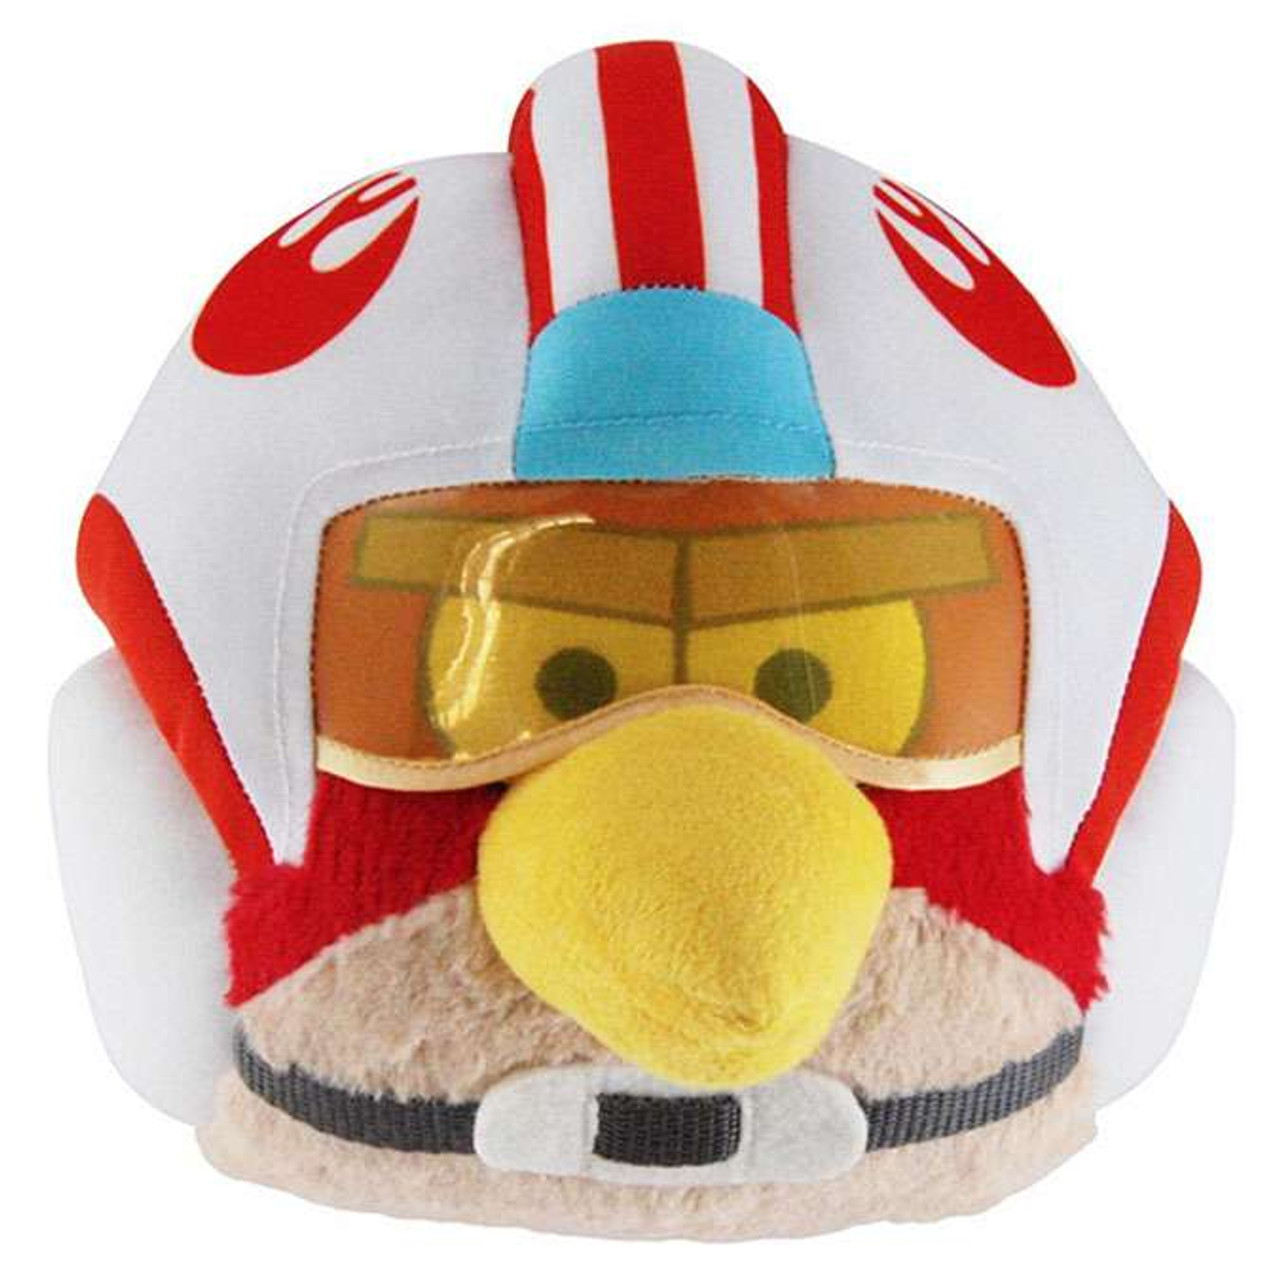 Star Wars Angry Birds Luke Skywalker Bird 12-Inch Plush [X-Wing Pilot]